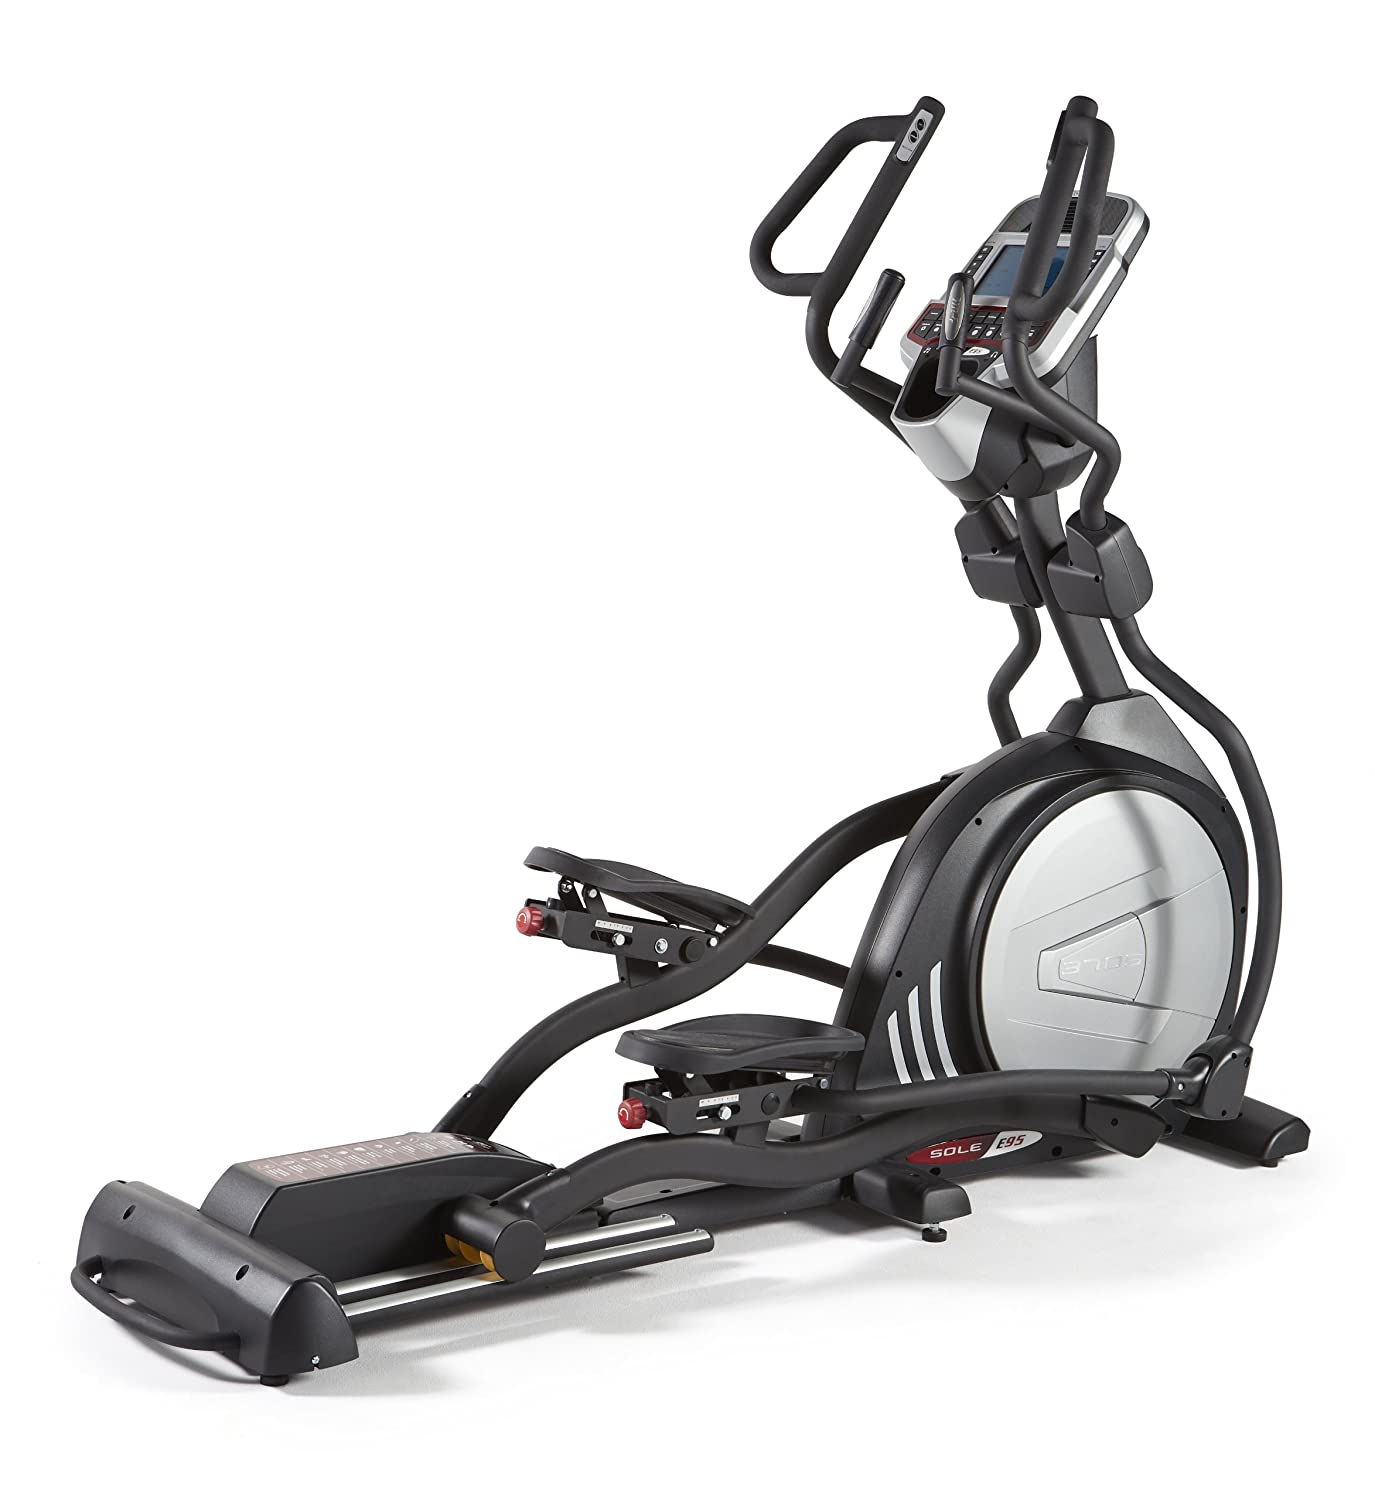 Best Elliptical Machines For Home Use?